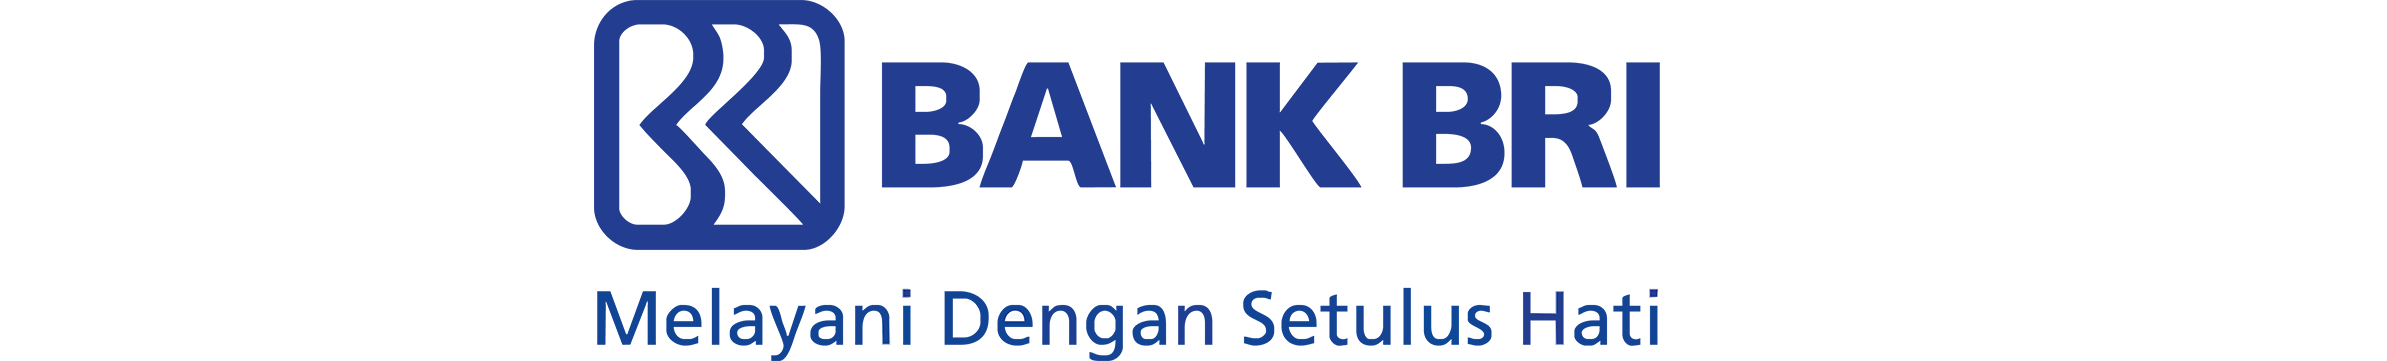 bank-bri-logo